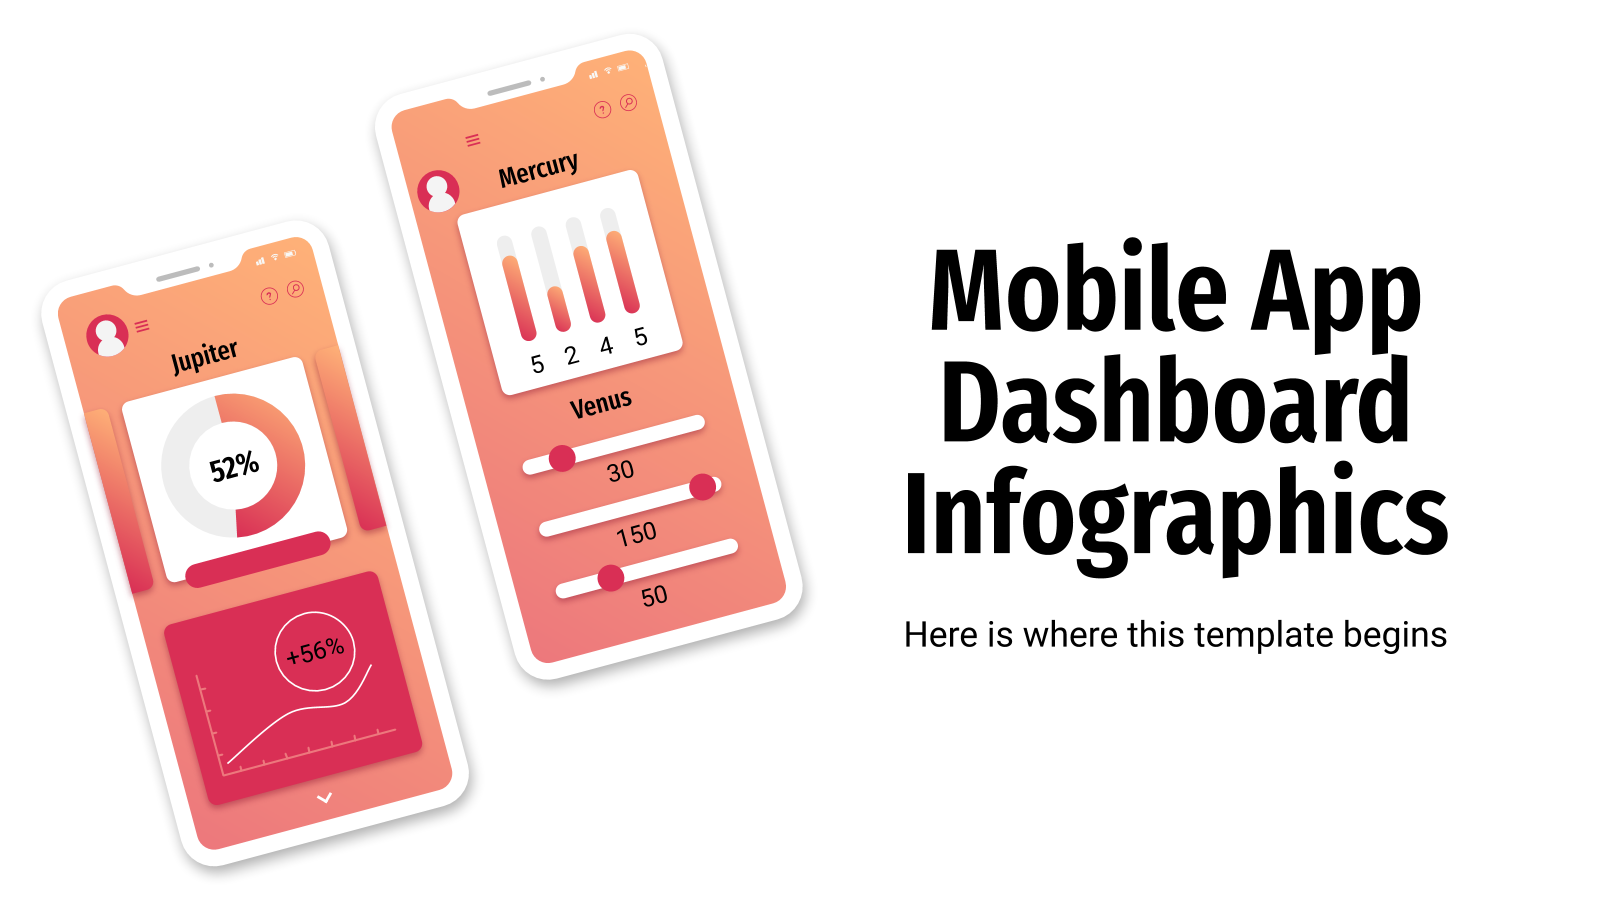 Mobile App Dashboard Infographics presentation template